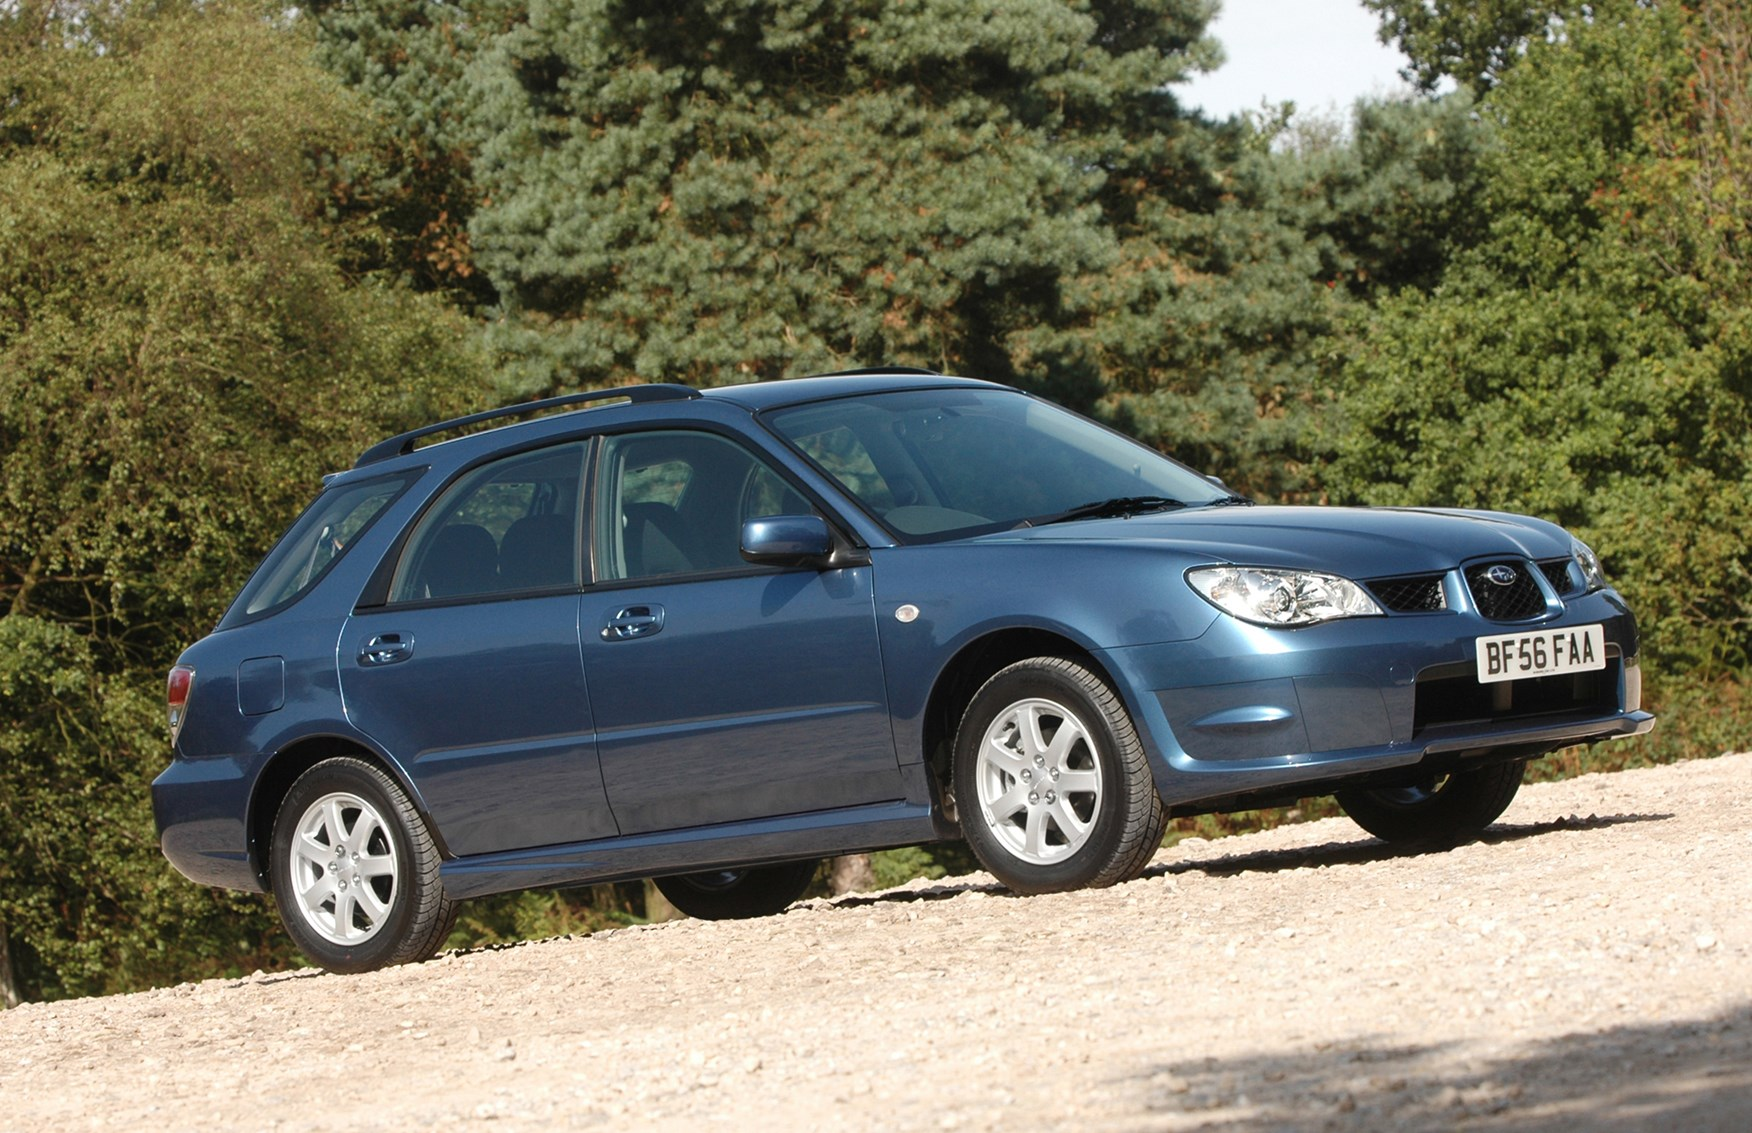 subaru impreza sports wagon review 2005 2008 parkers. Black Bedroom Furniture Sets. Home Design Ideas